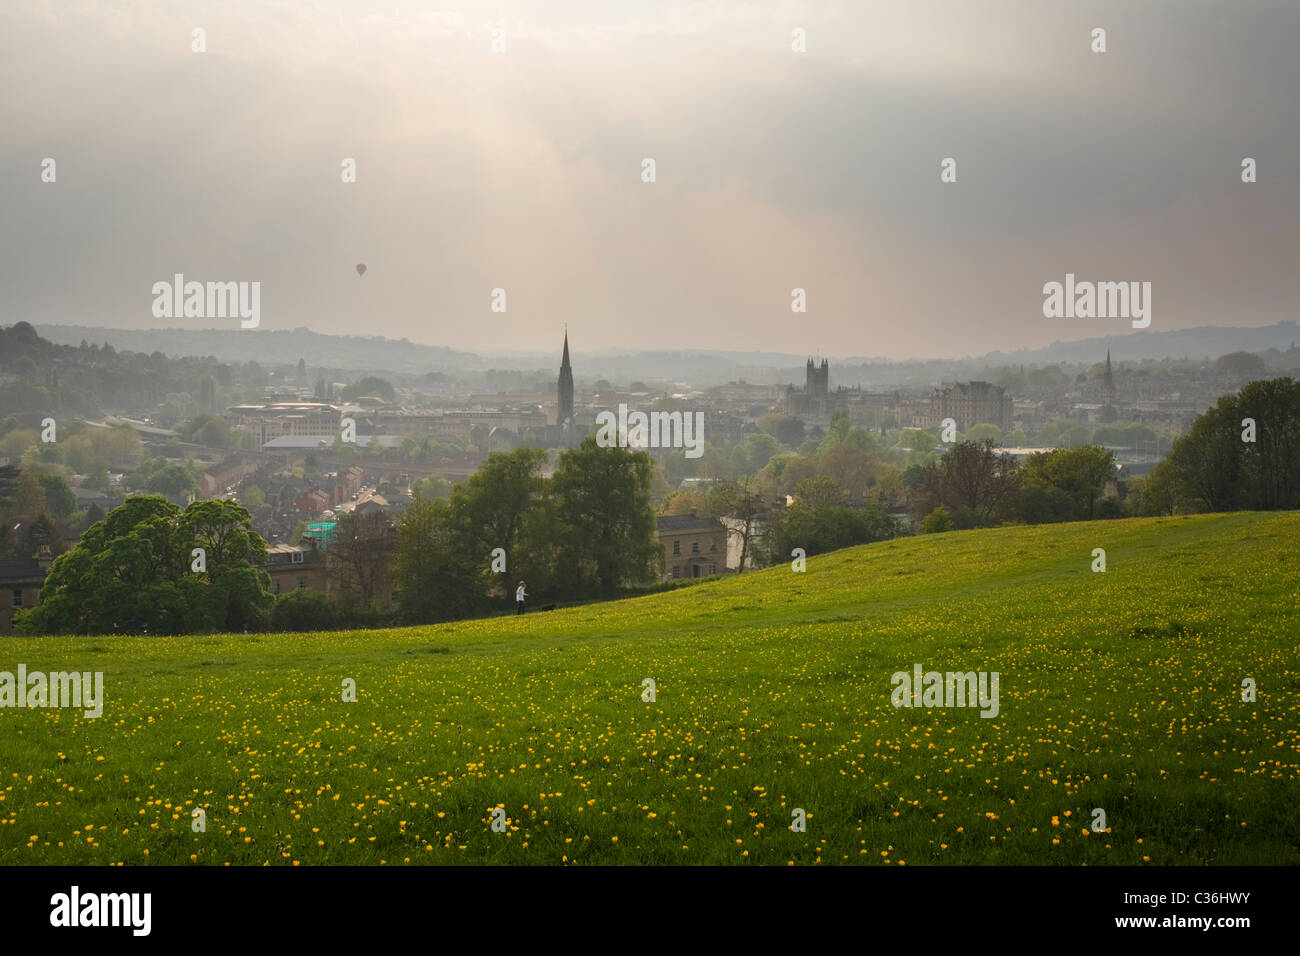 Ville de Bath Bathwick Hill au printemps. Le Somerset. L'Angleterre. UK. Photo Stock